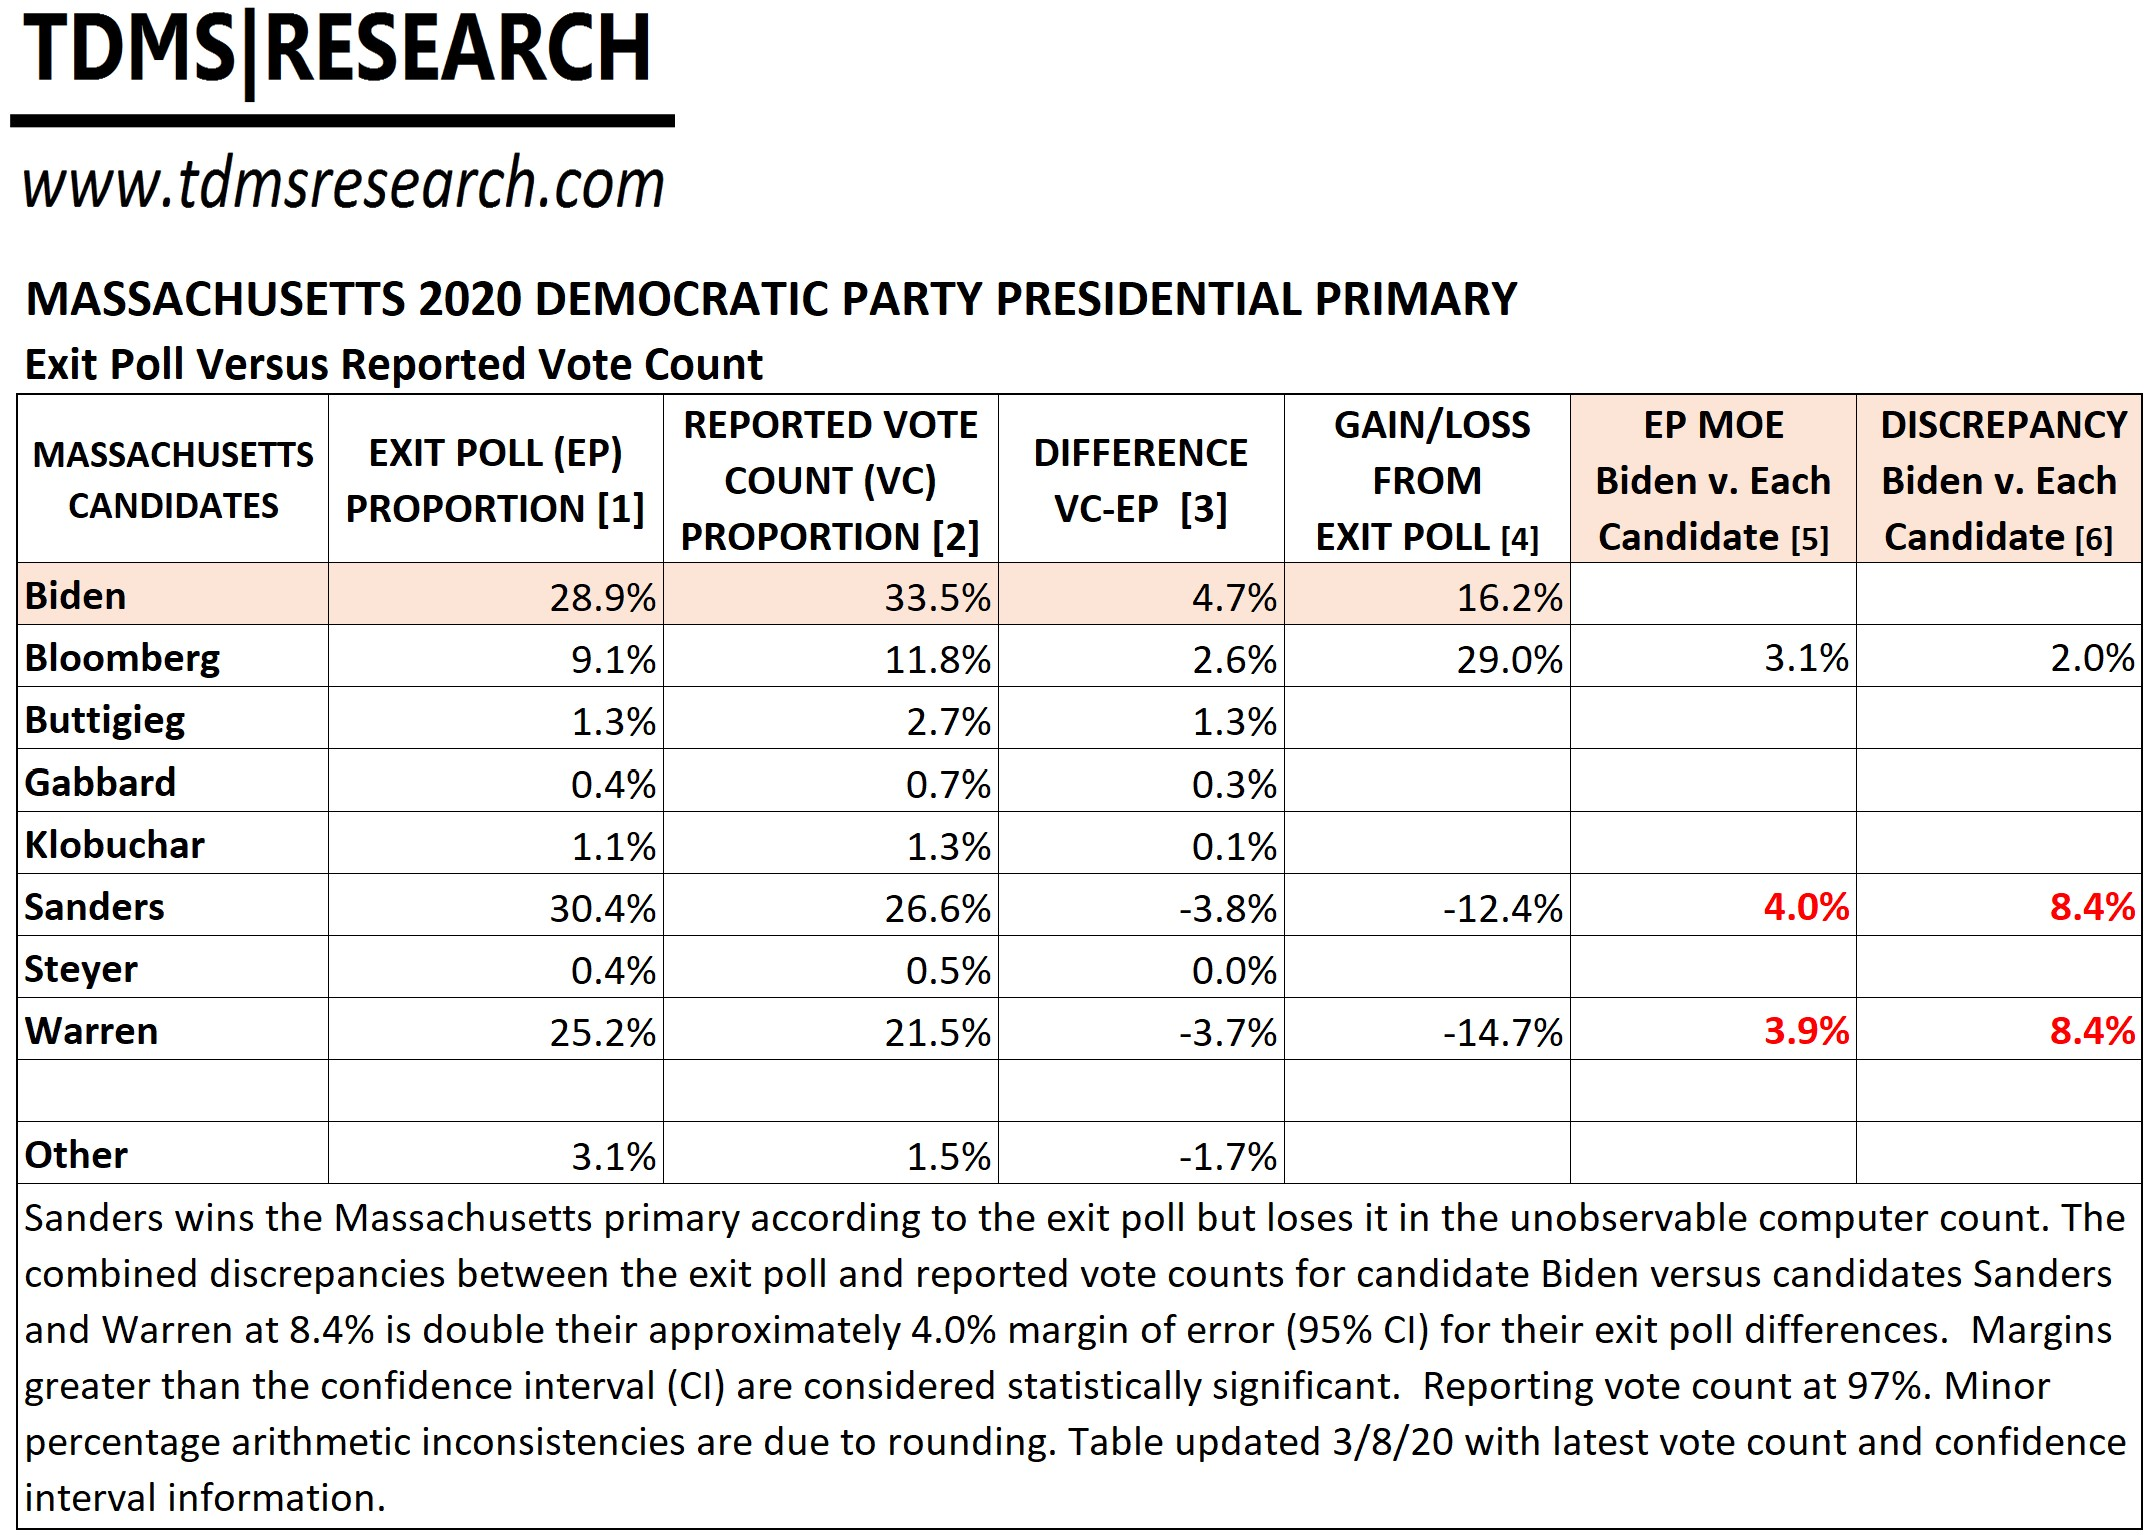 Massachusetts 2020 Democratic Party Primary Exit Poll Versus Reported Vote Count Tdms Research